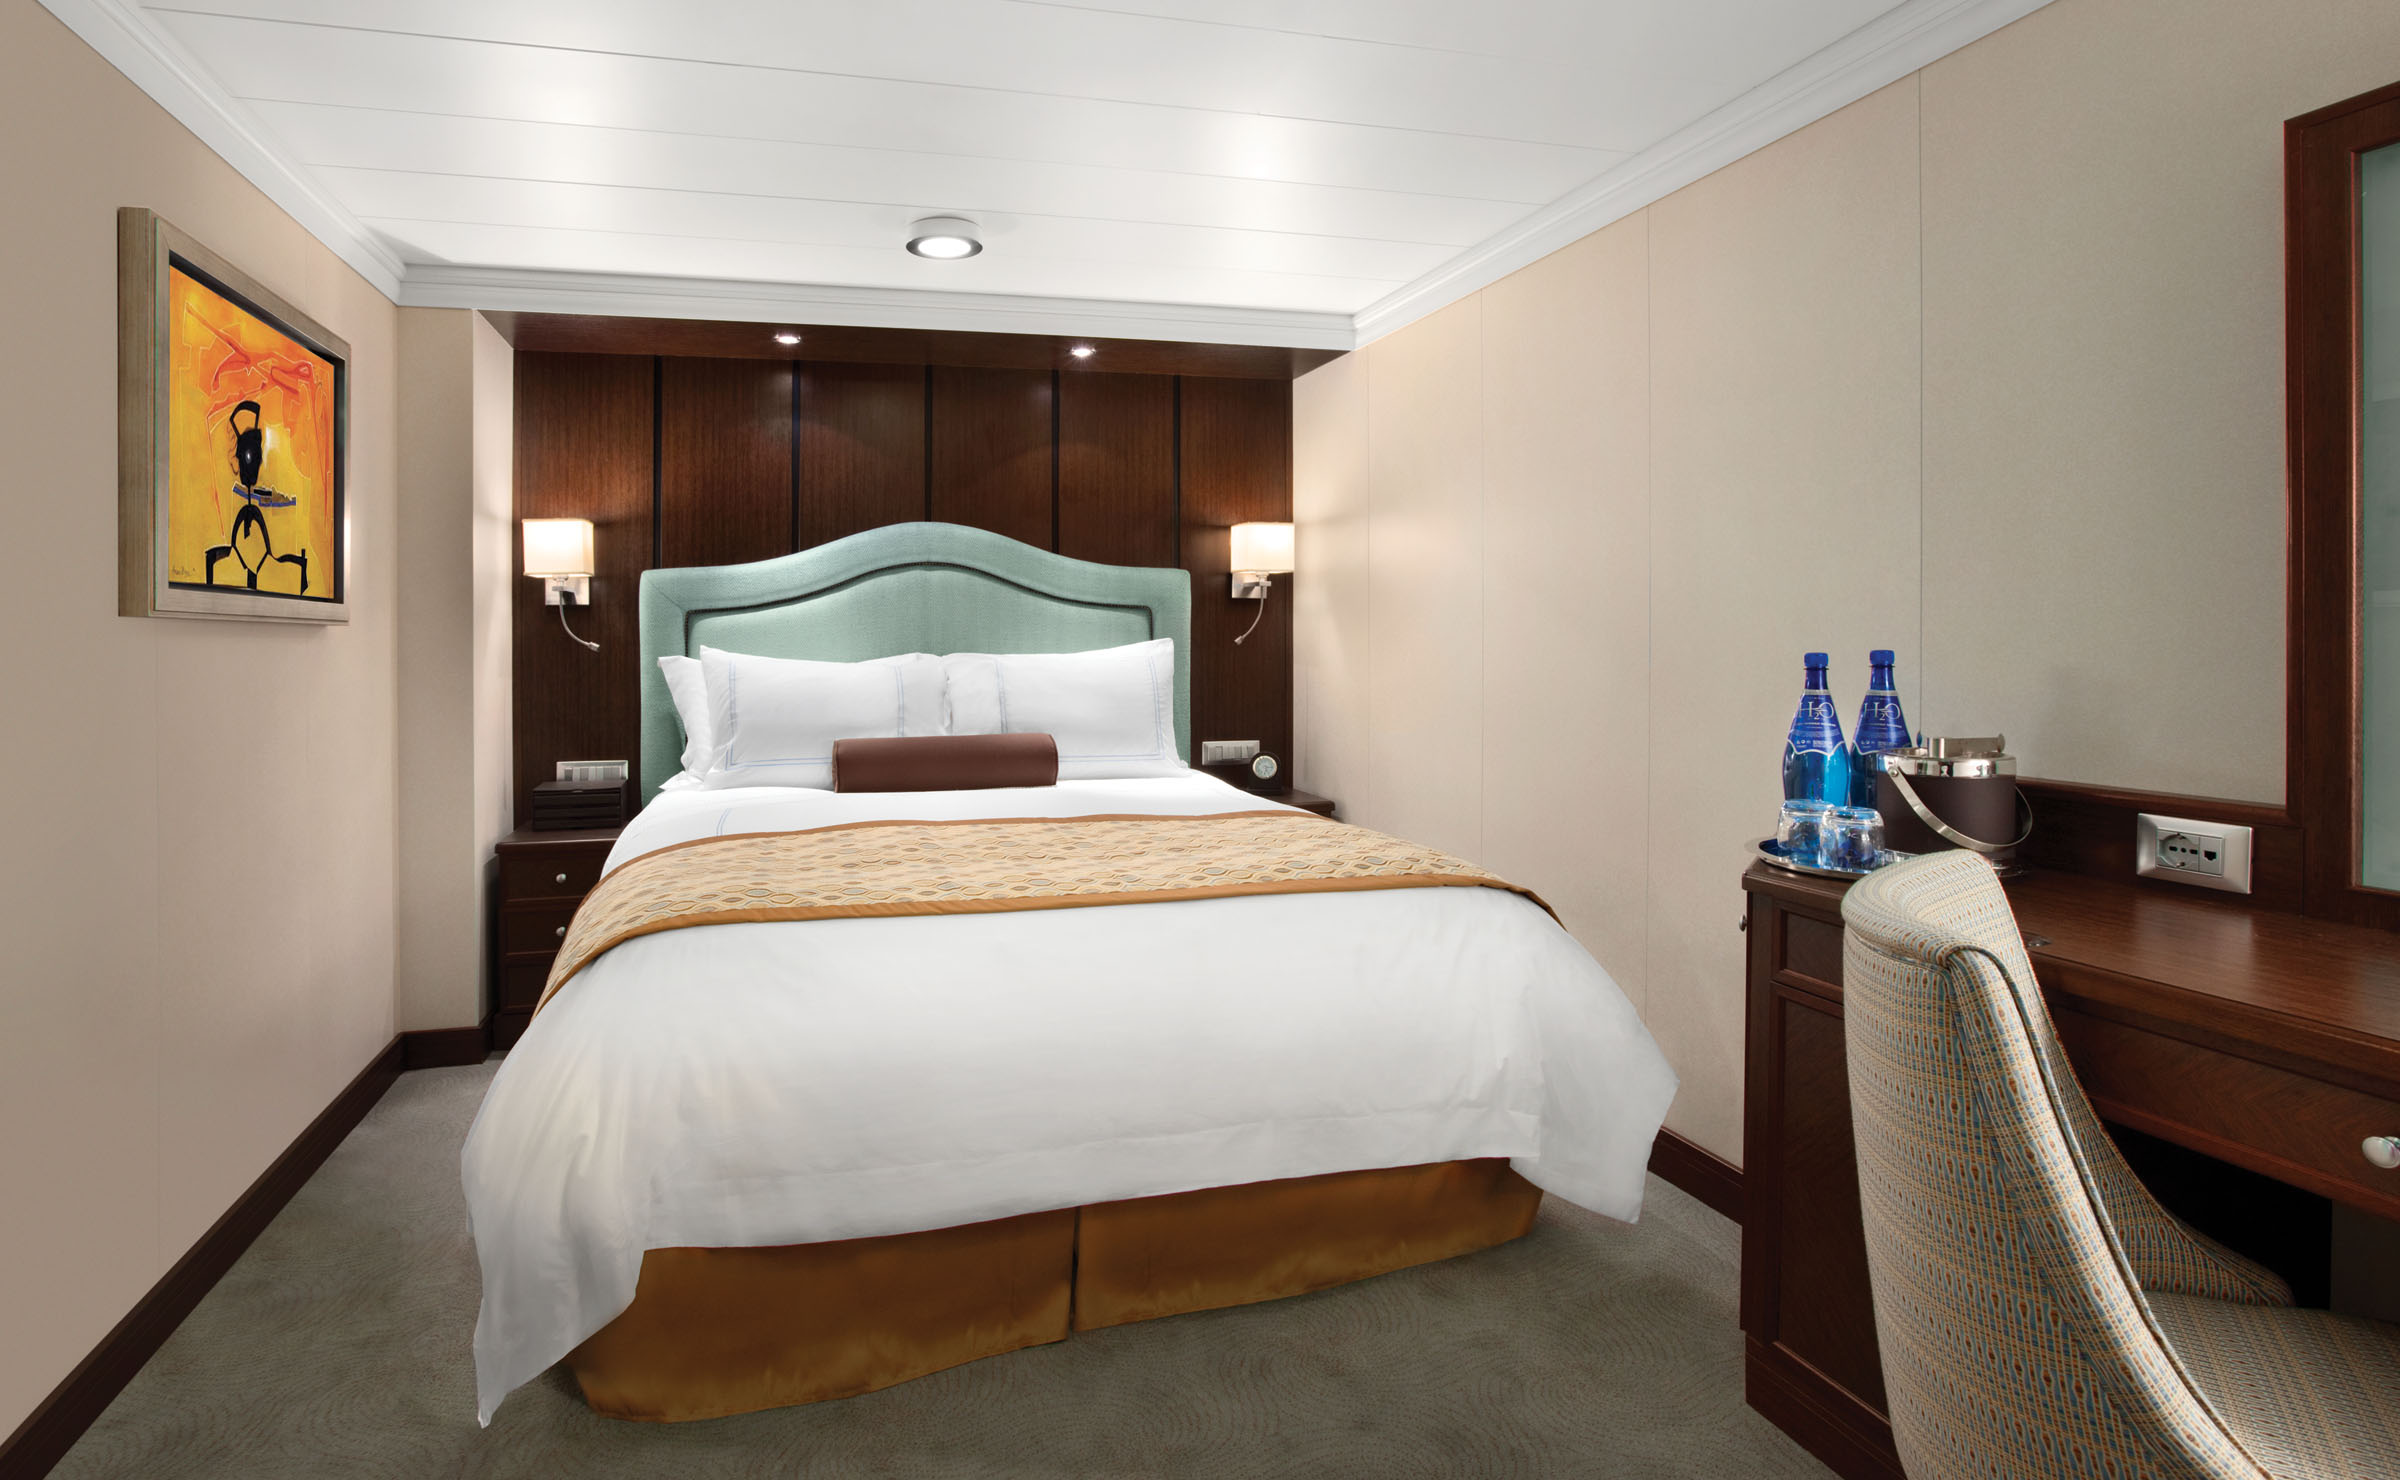 Oceania Cruises Oceania Class Accommodation Inside Stateroom.jpg